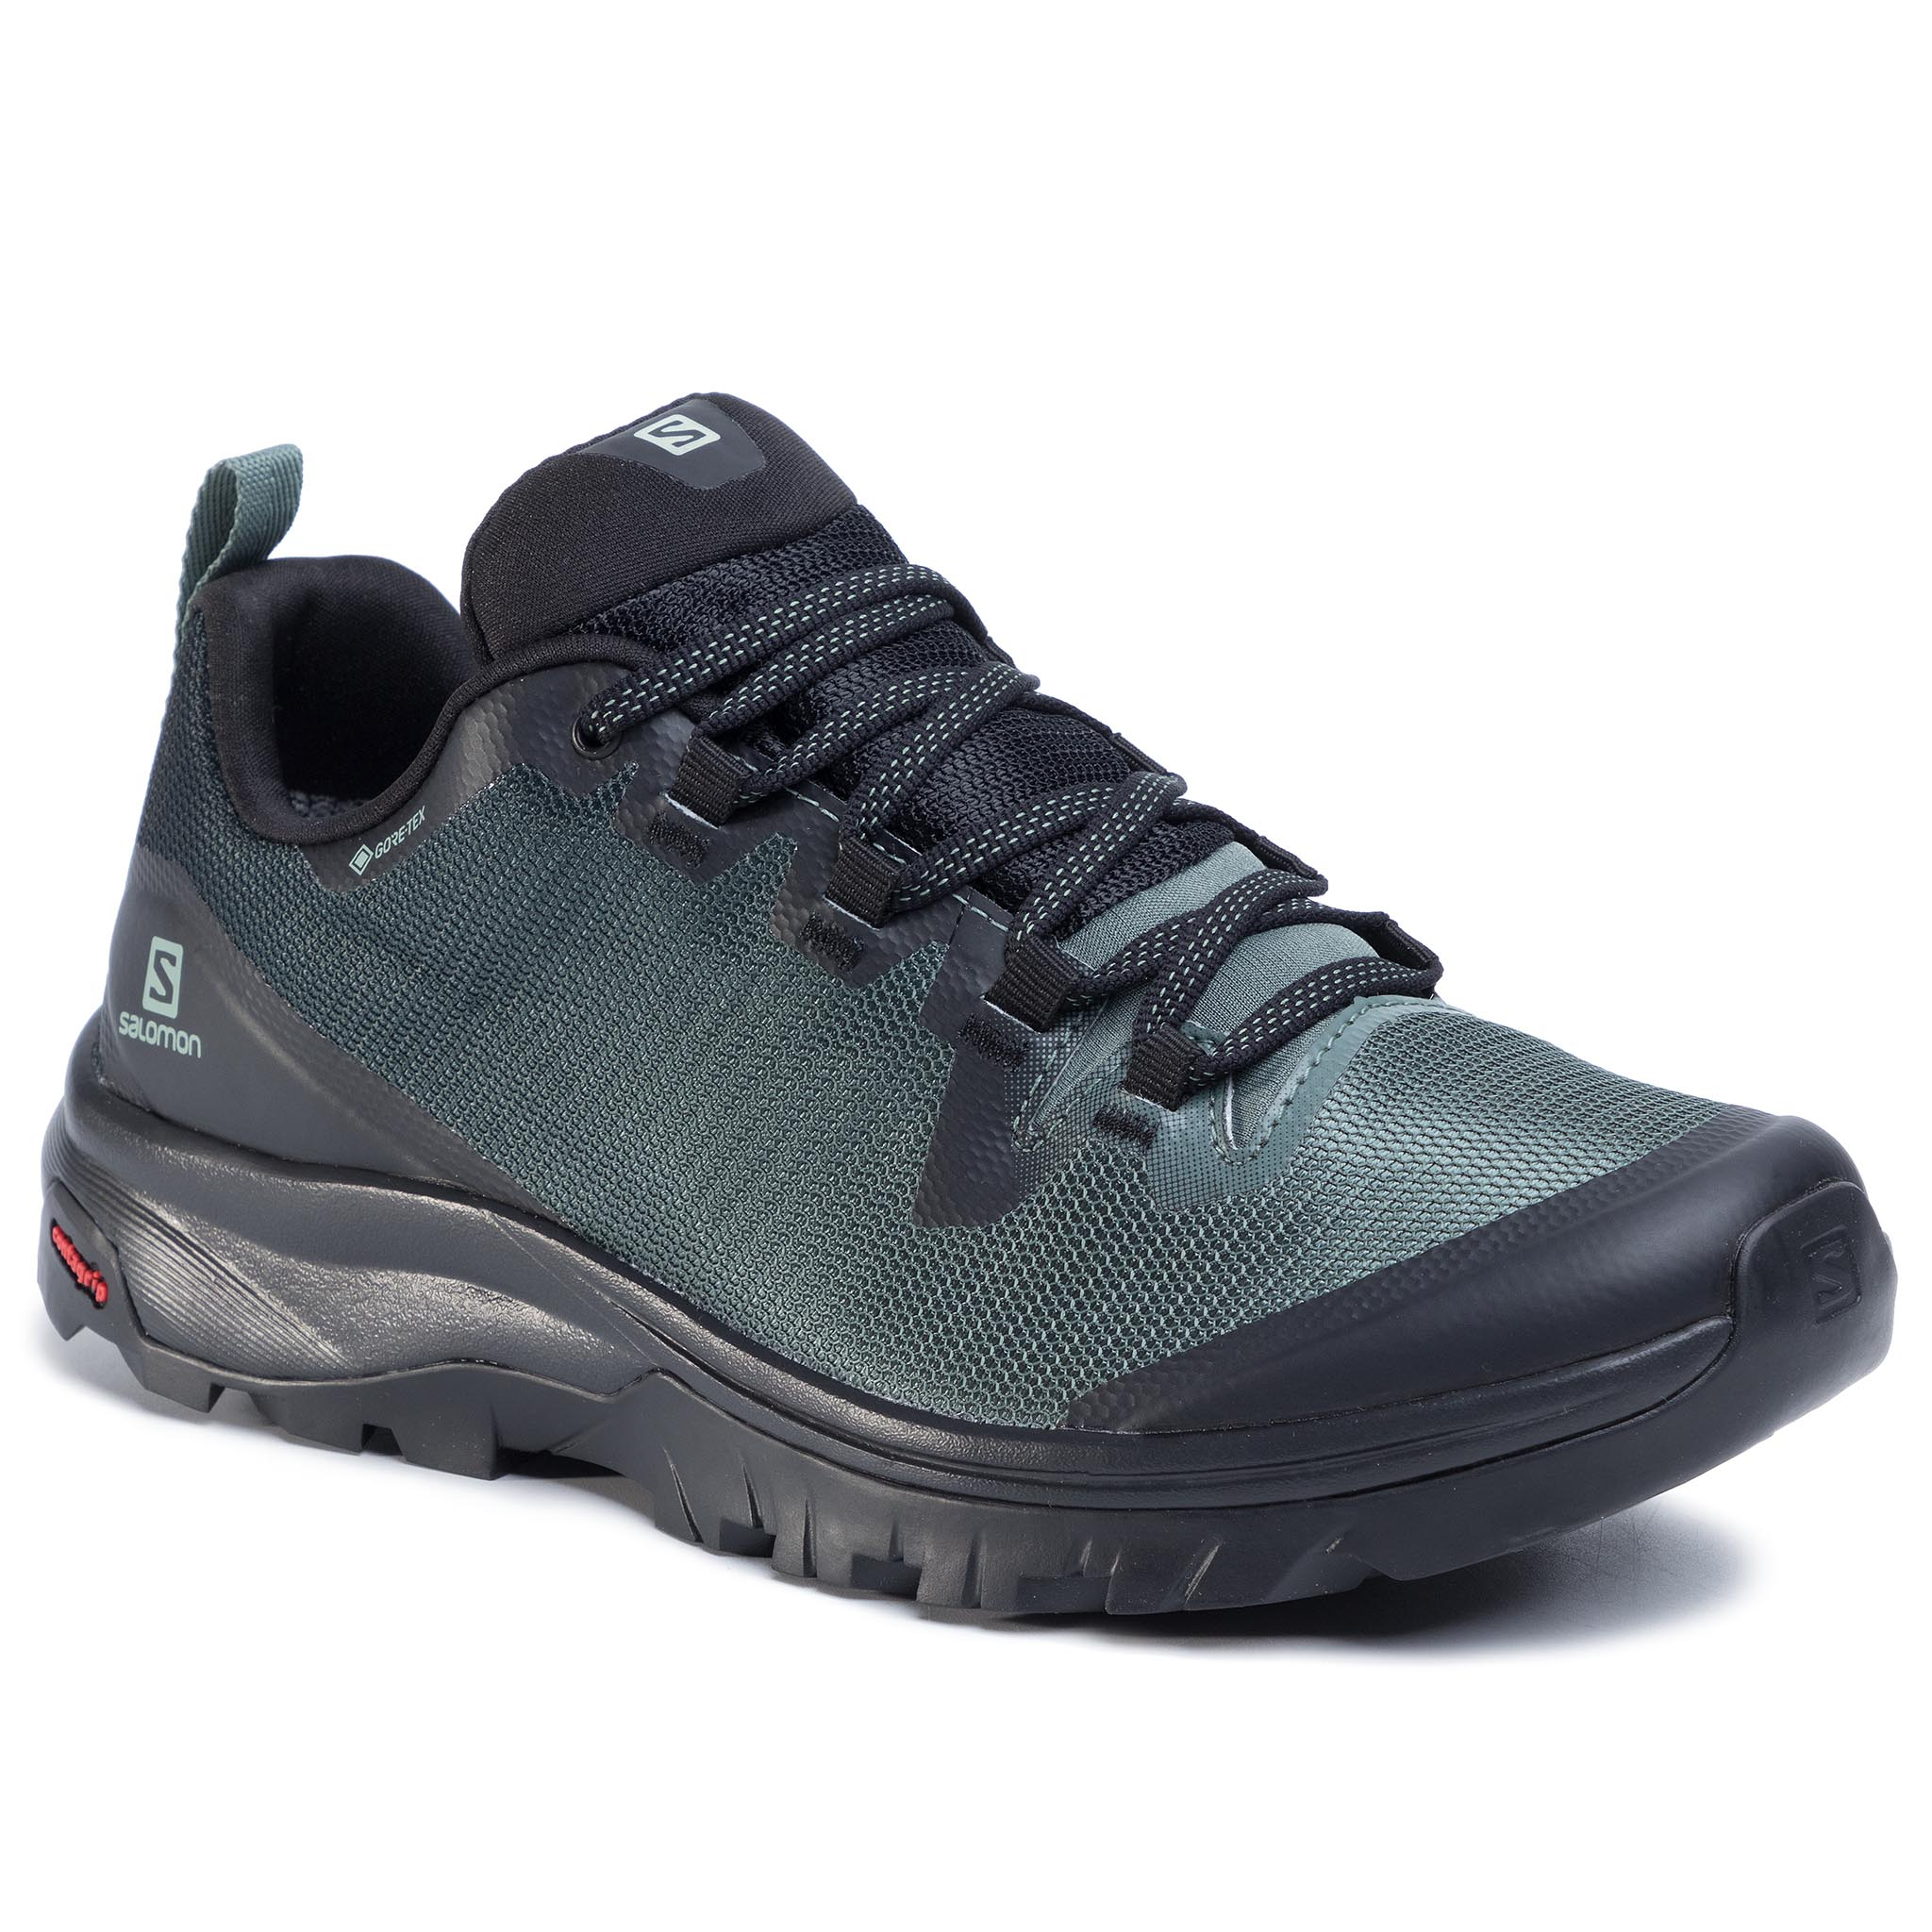 Trekkings Salomon - Vaya Gtx Gore-Tex 409896 Black/Balsam Green/Black imagine epantofi.ro 2021